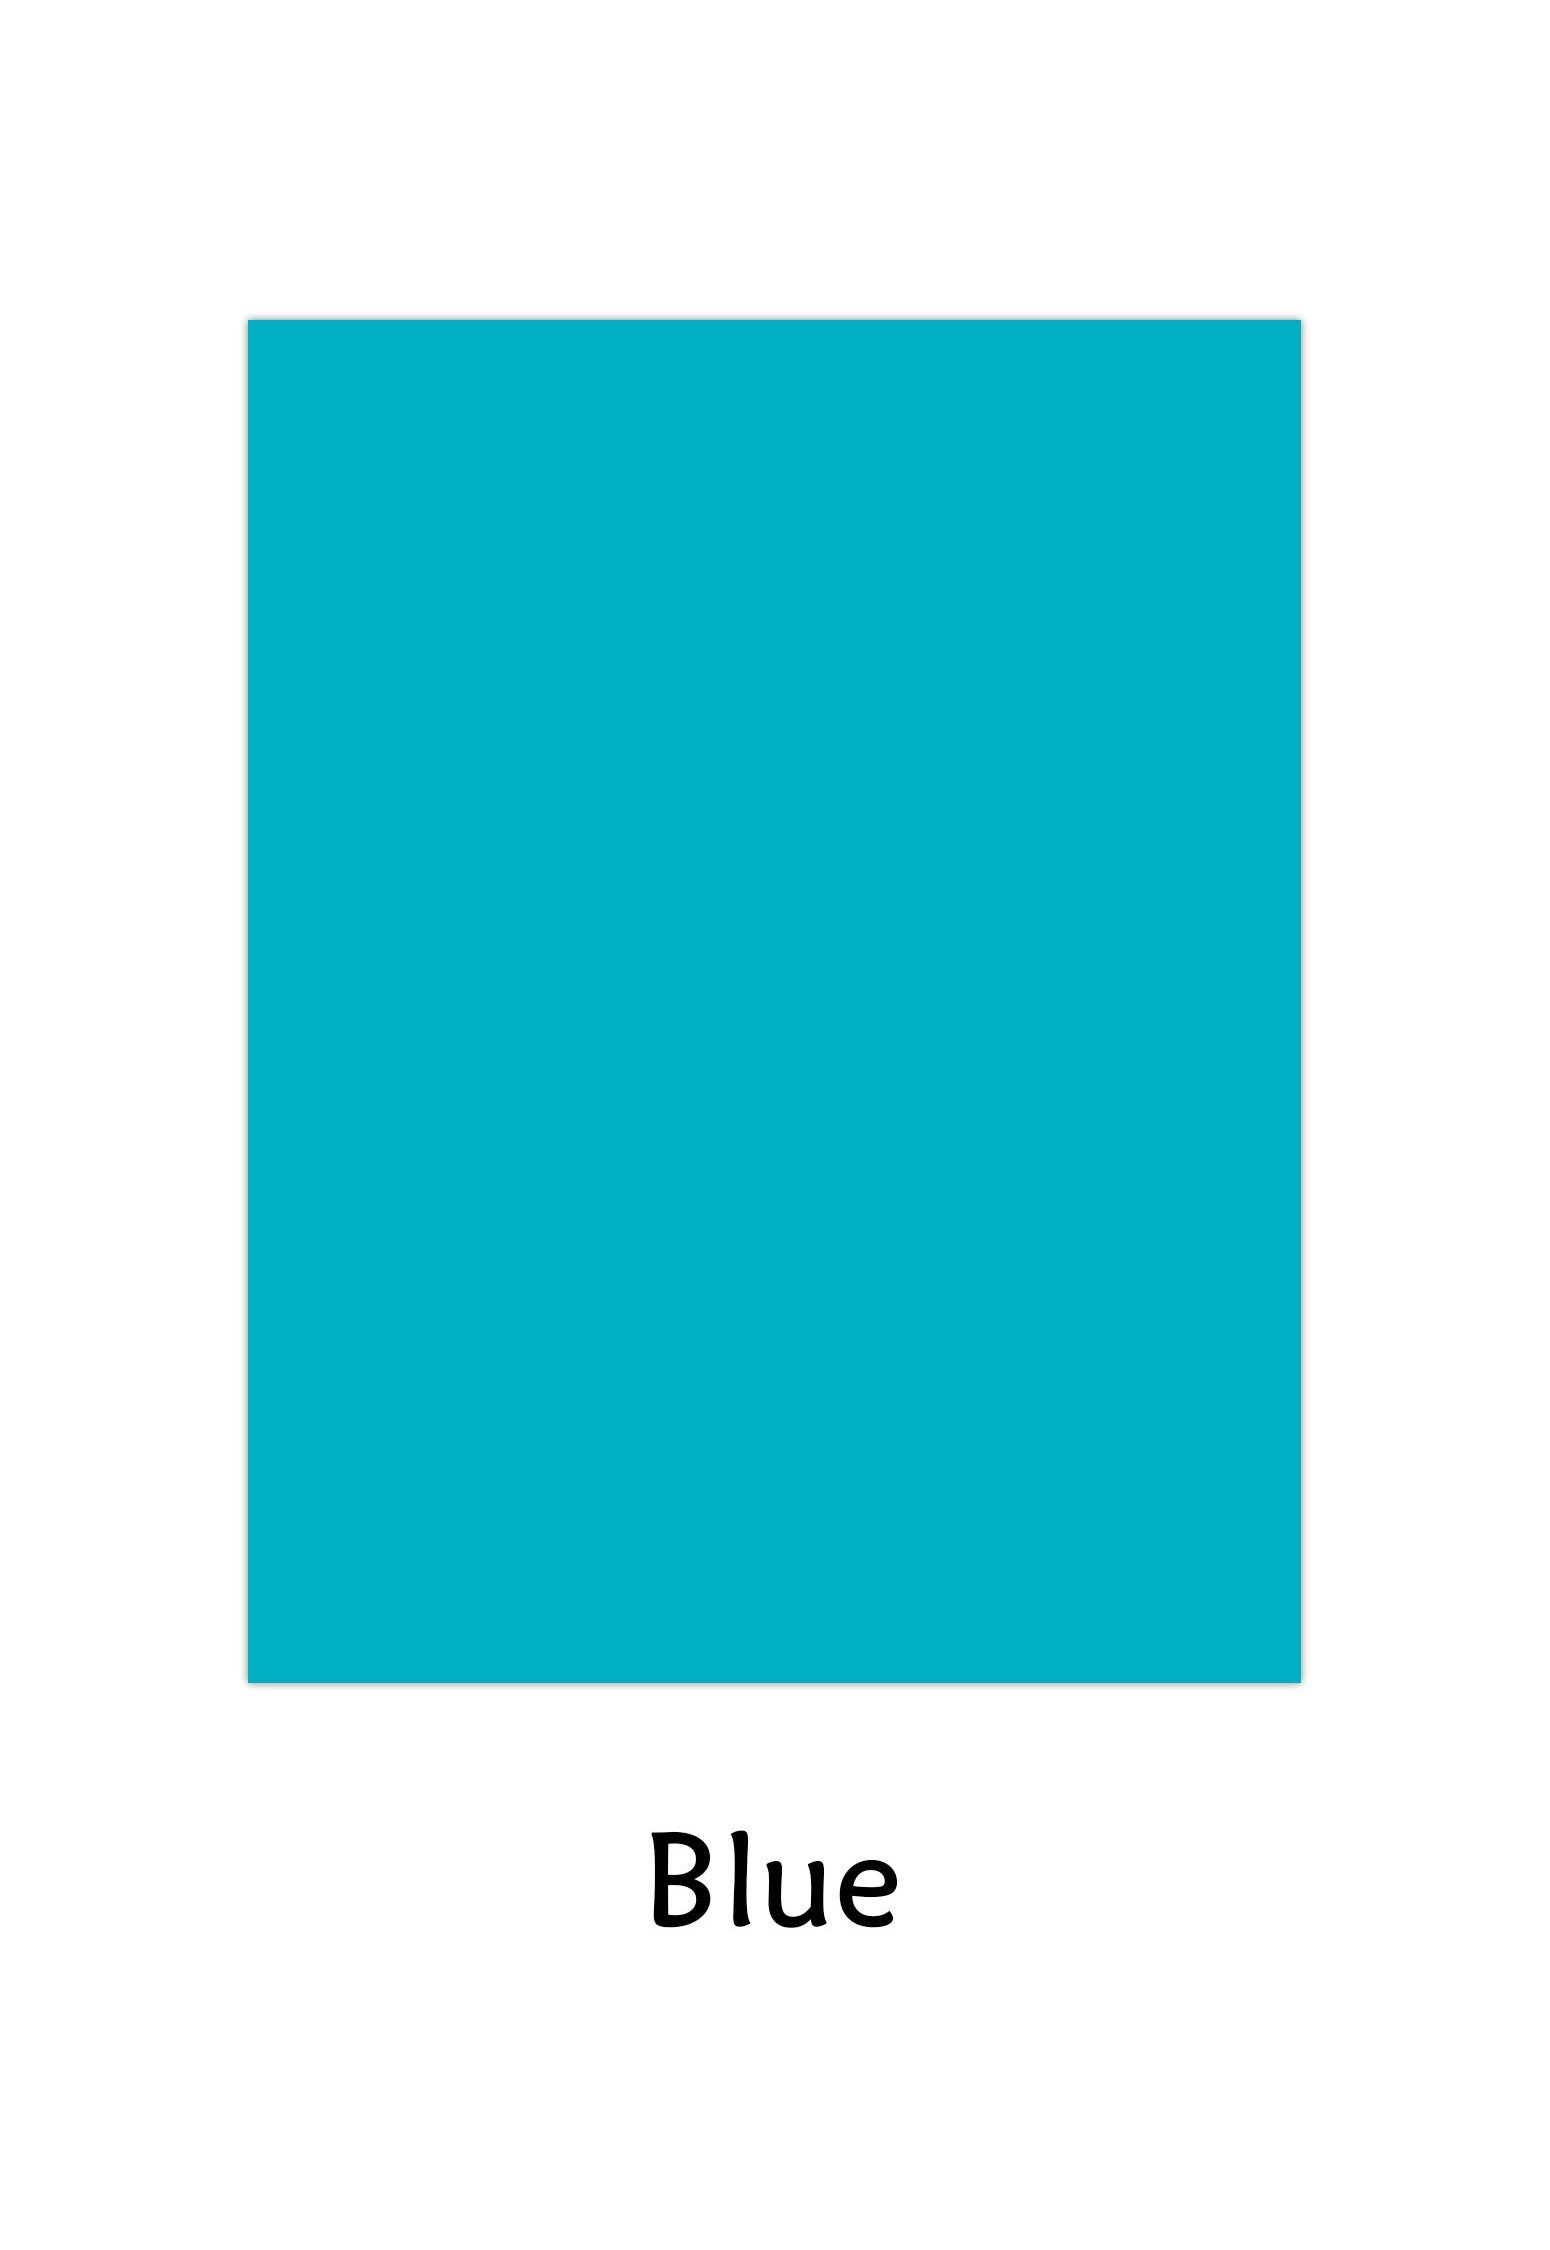 Neenah Astrobrights Premium Color Card Stock, Paper 65 Lb Cover/Perfect for School, Daycare, Home, Office - Cardstock - 50 Sheets Per Pack (8.5 x11, Blue)